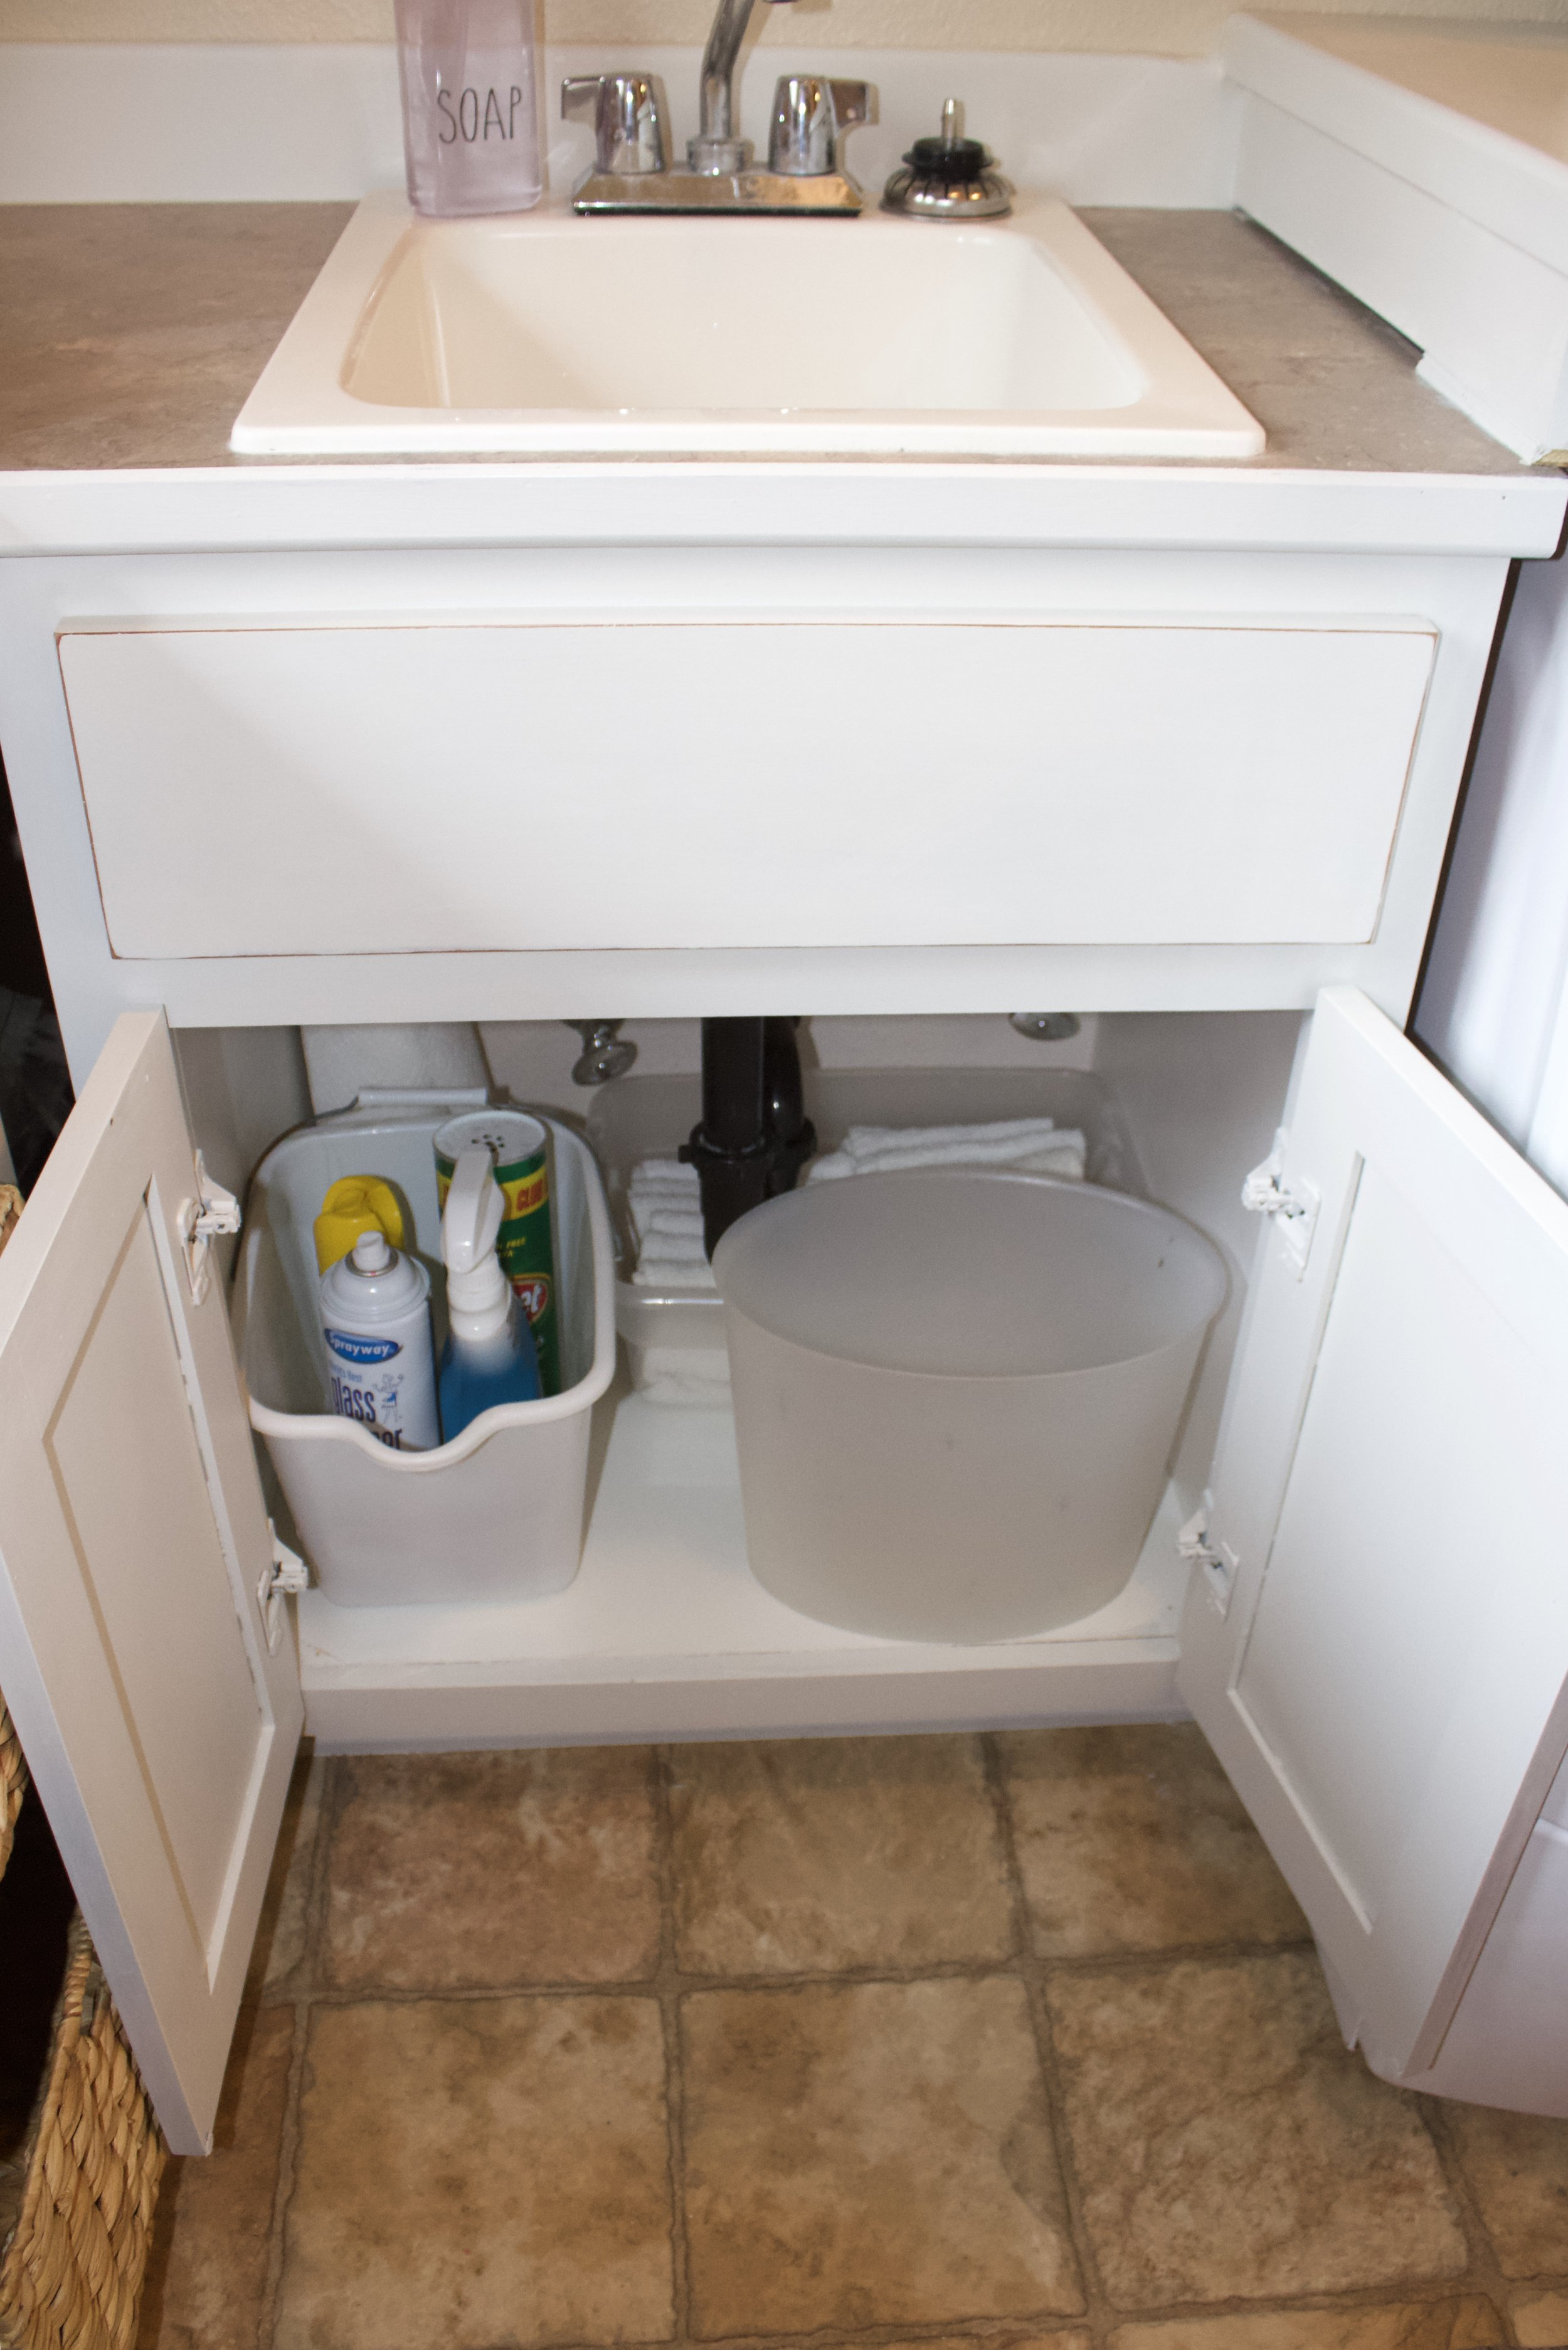 Under the sink is cleaning supplies, rags and a garbage can.